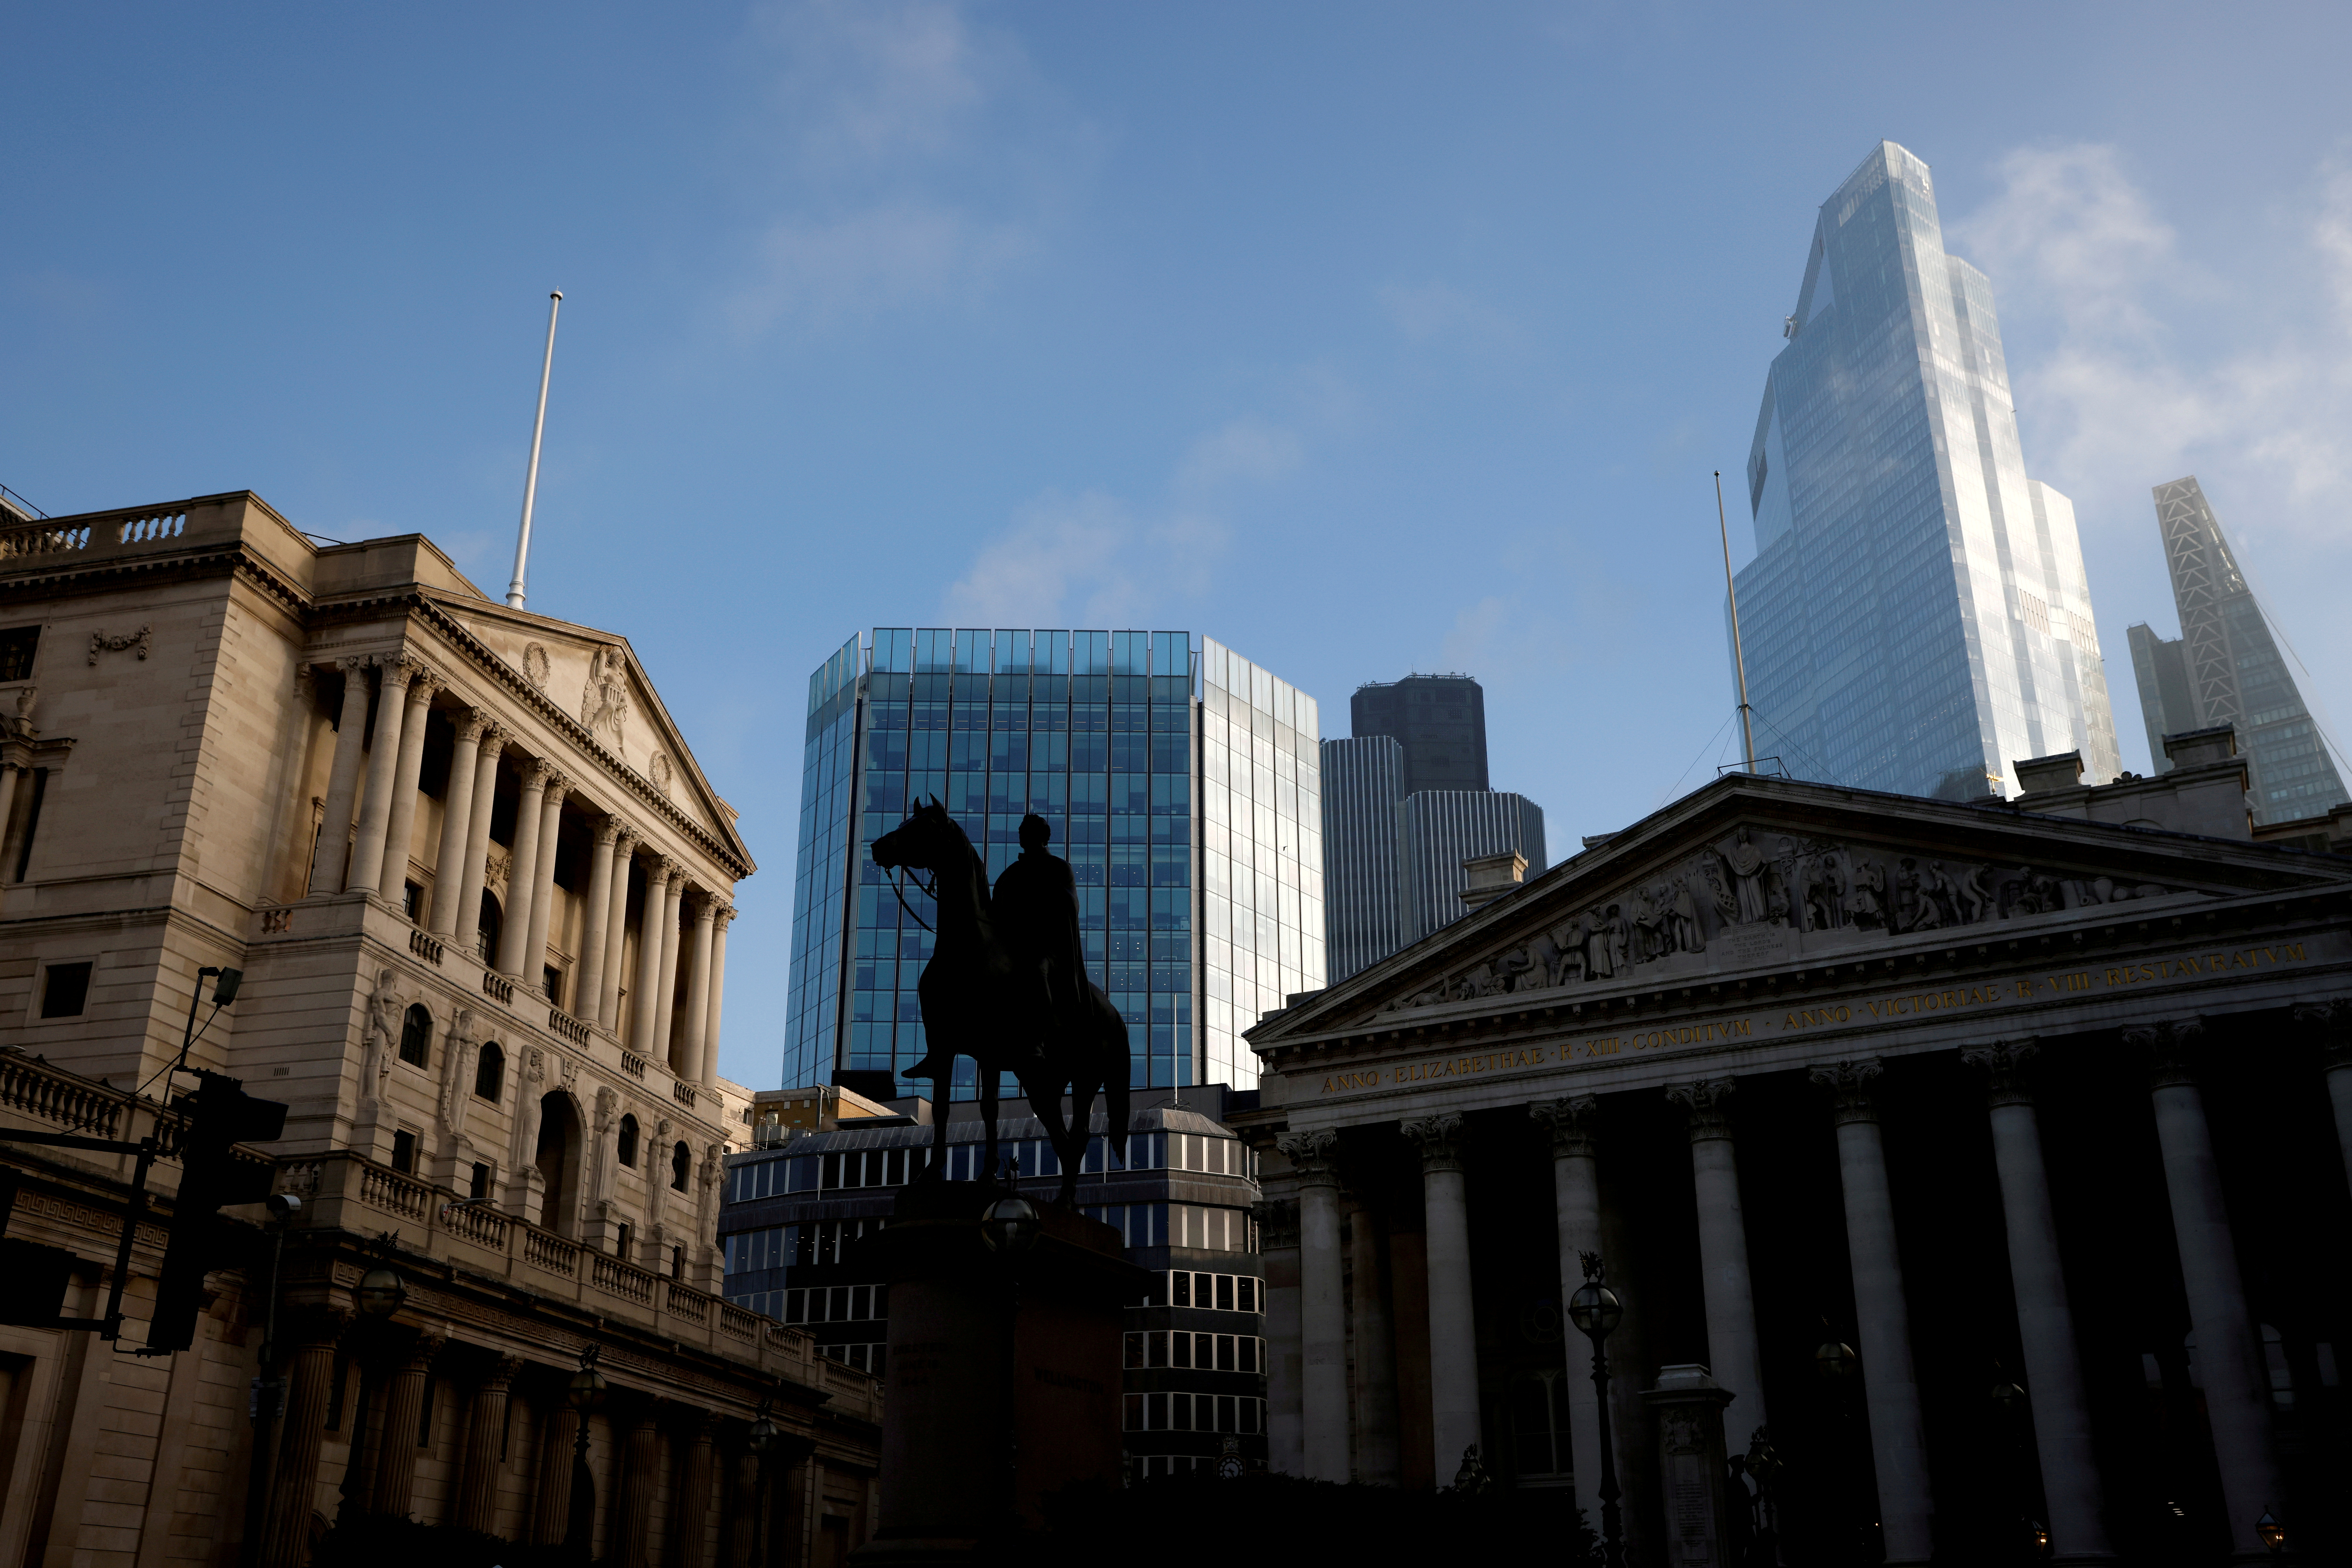 A general view shows The Bank of England and the City of London financial district in London, Britain, November 5, 2020. REUTERS/John Sibley/File Photo